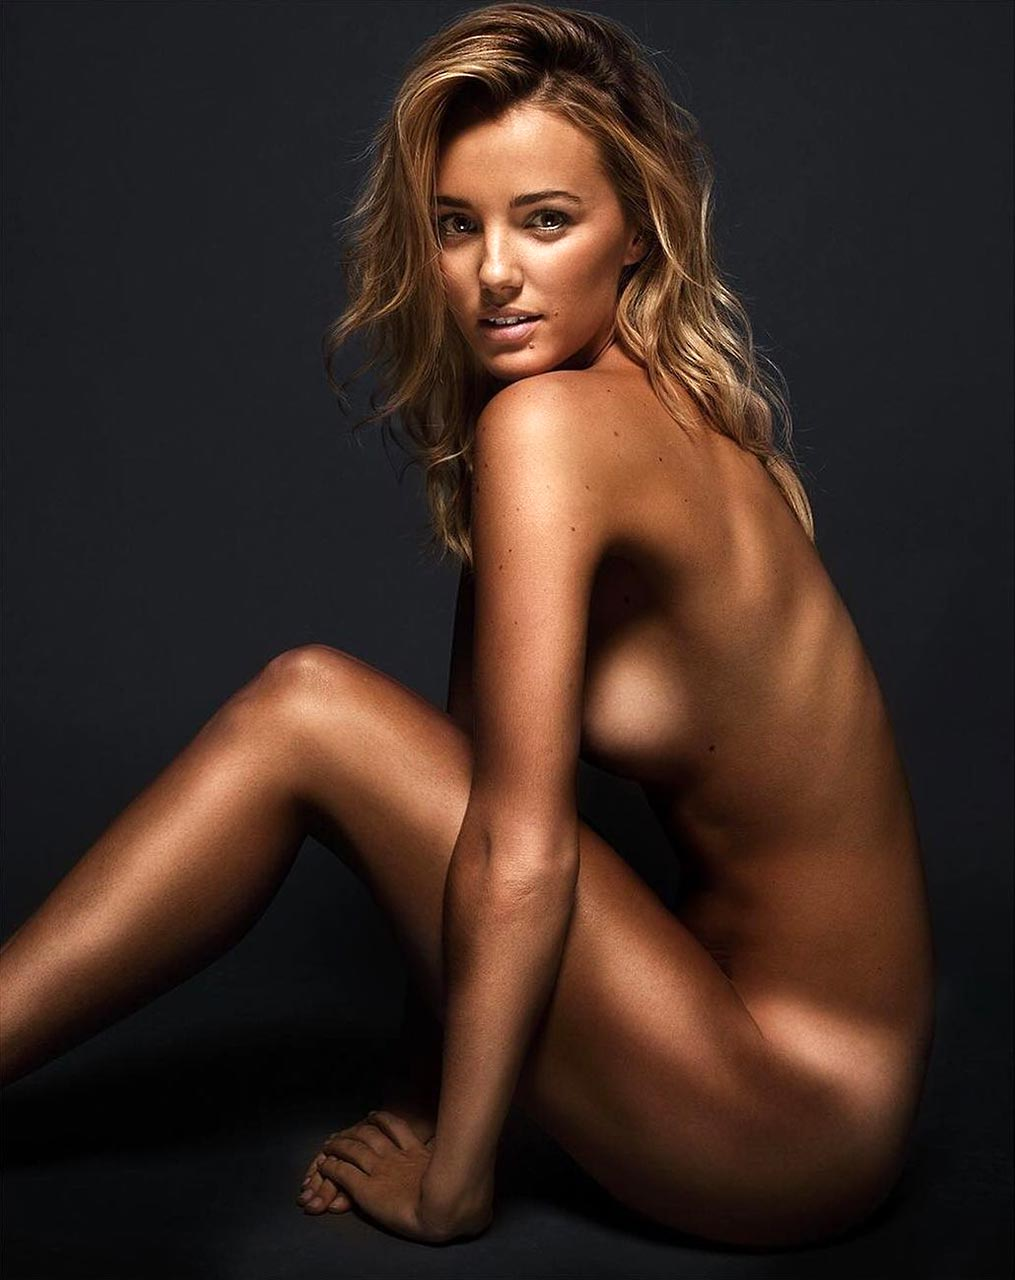 Brooke hogan nude